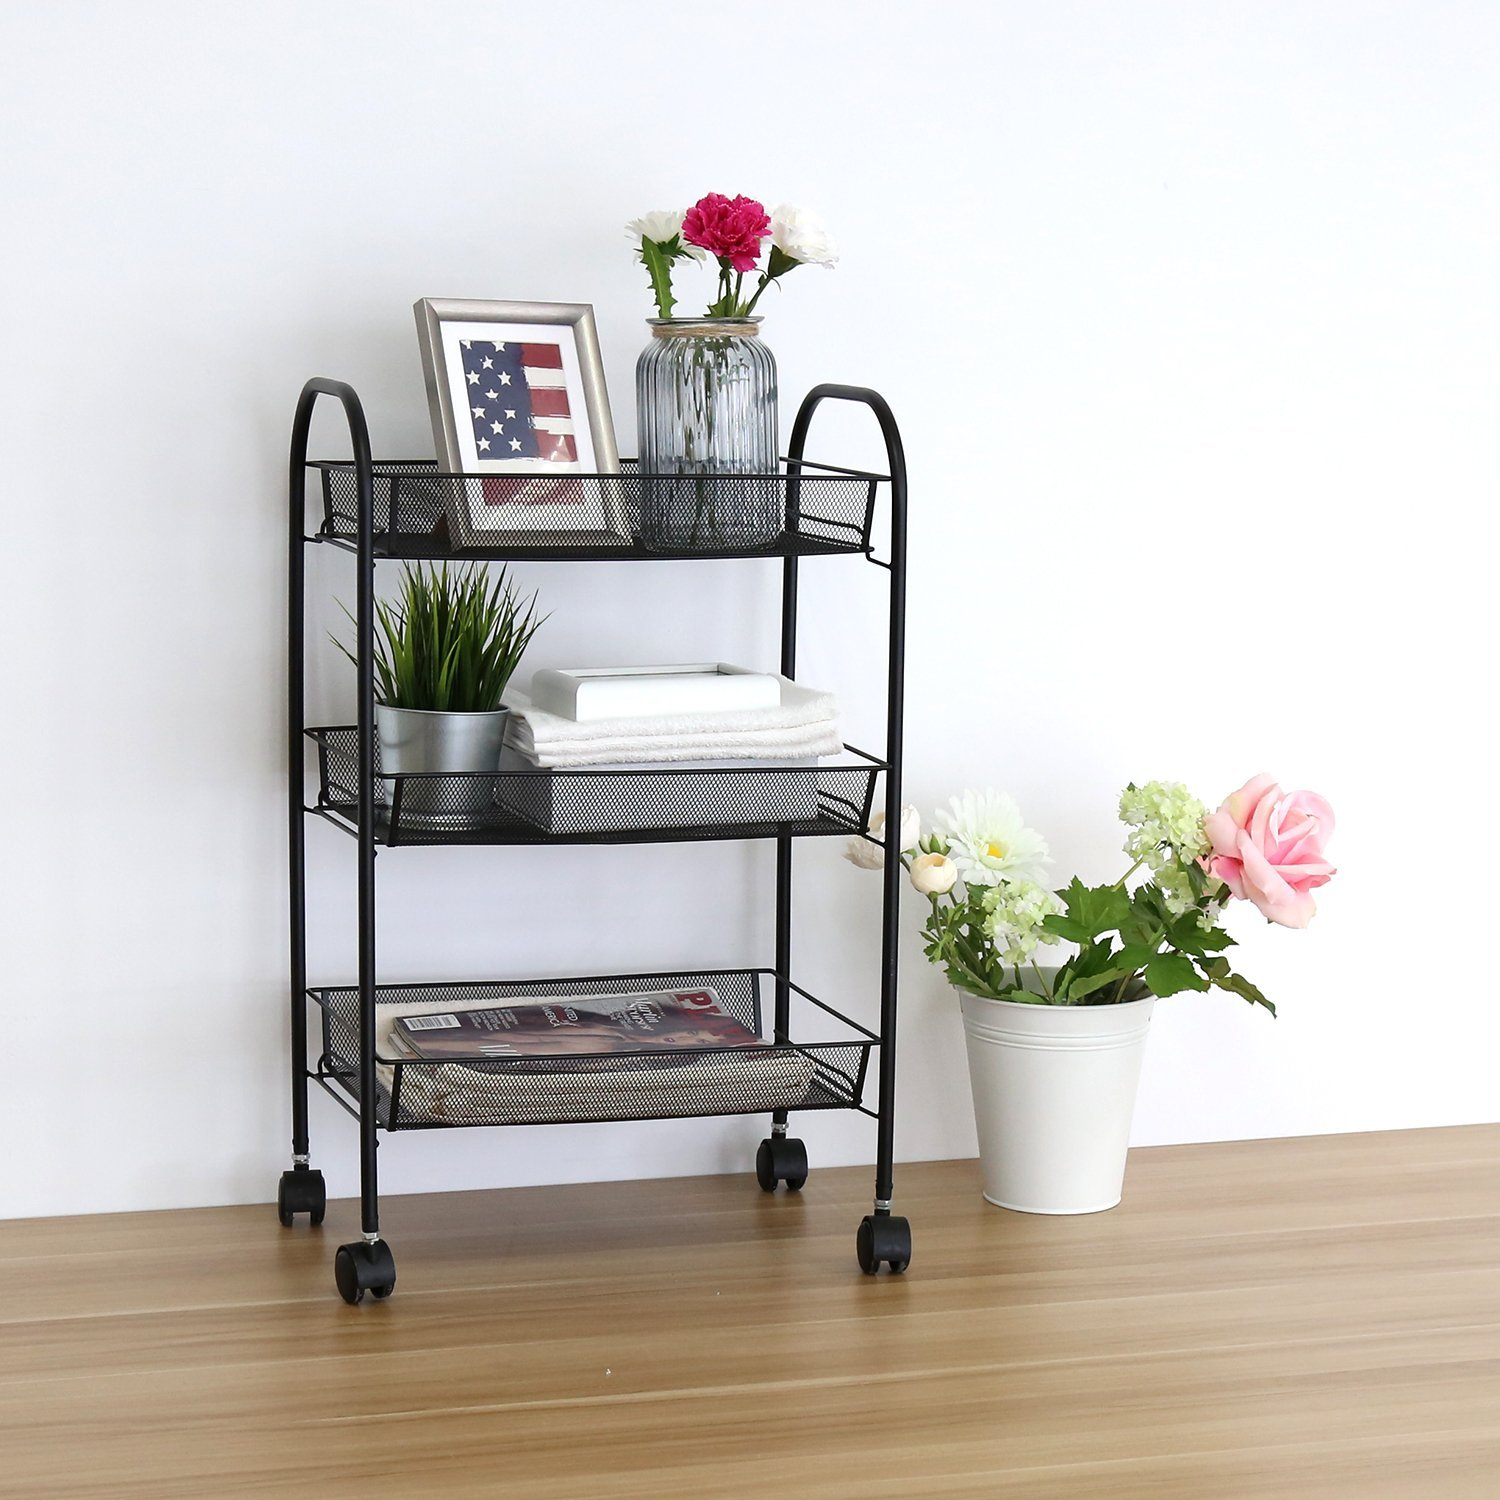 Kitchen Organizer Racks 3 shelf rack shelving rack rolling kitchen organizer storage utility 3 shelf rack shelving rack rolling kitchen organizer storage utility cart black workwithnaturefo